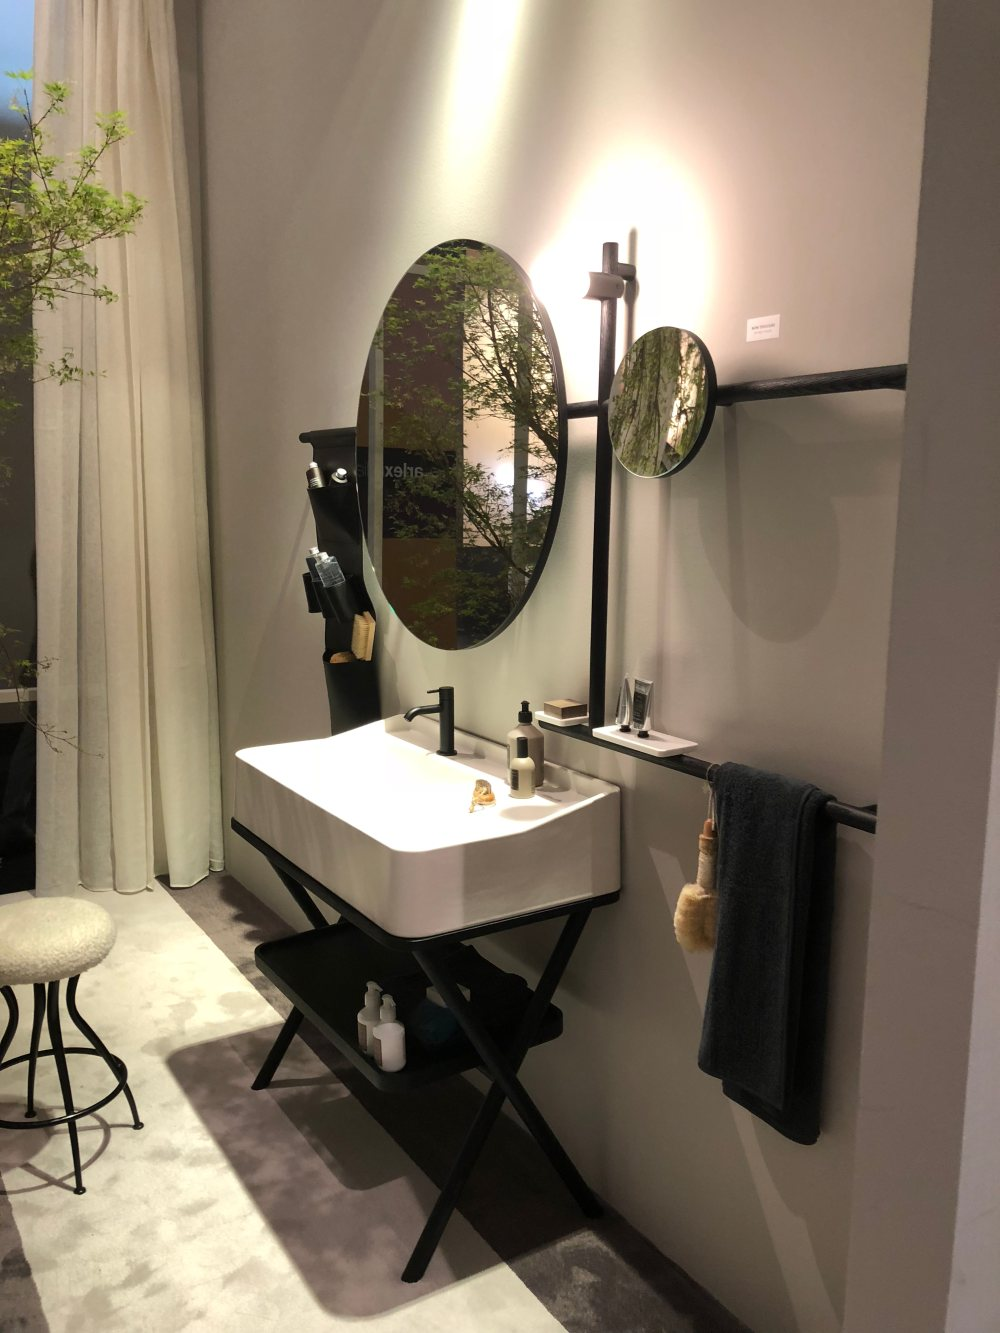 The sink is in this case the main focal point of the vanity and the space around it